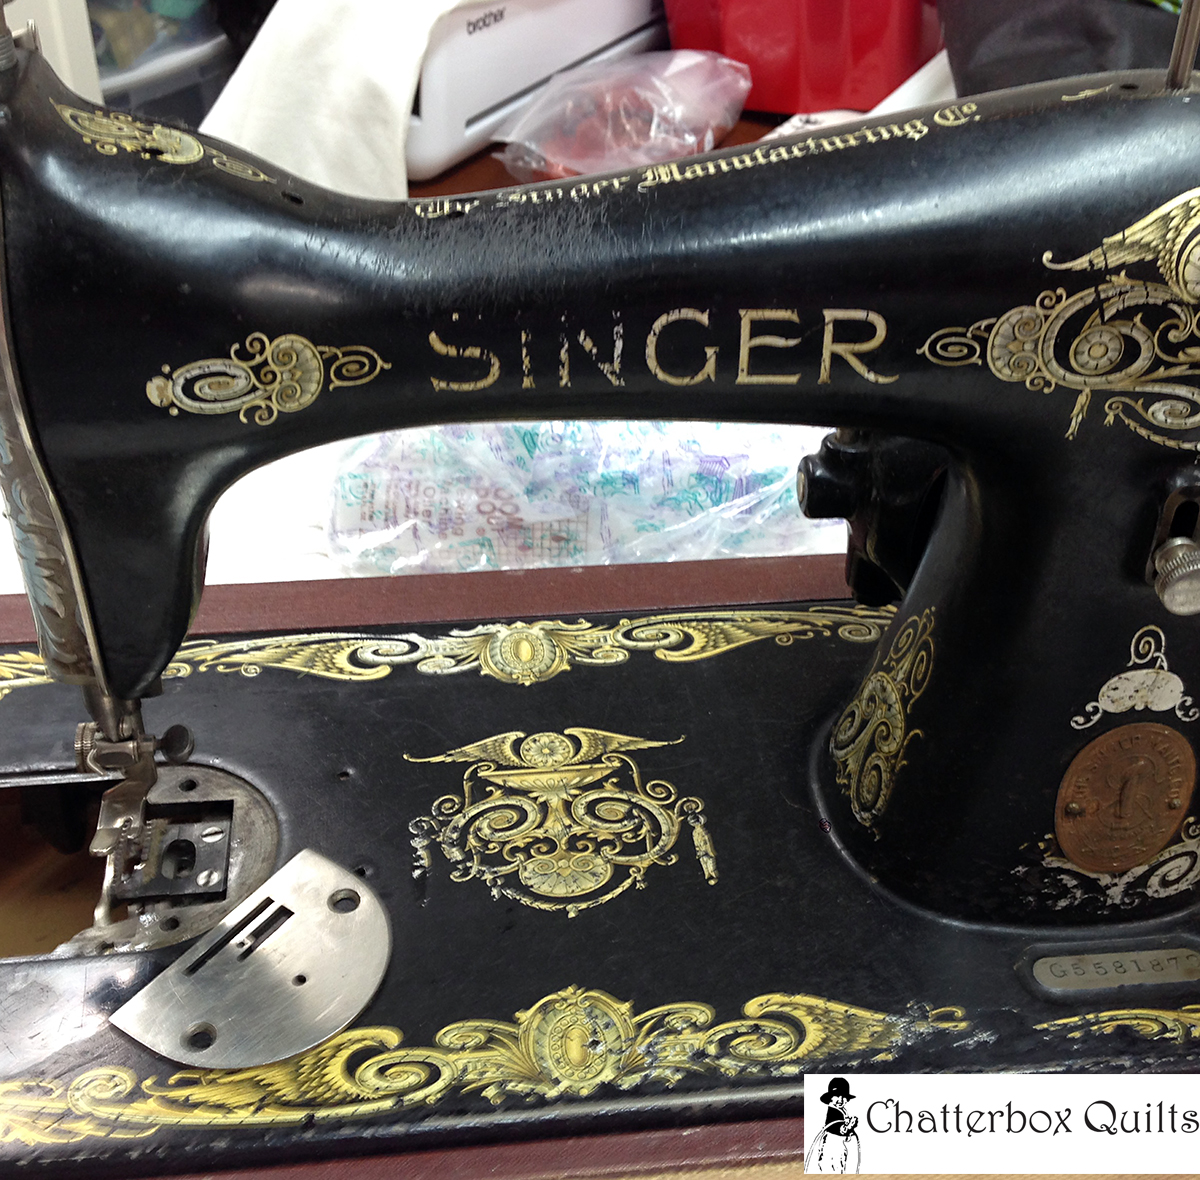 My vintage Singer 115 sewing machinein the process of being cleaned.